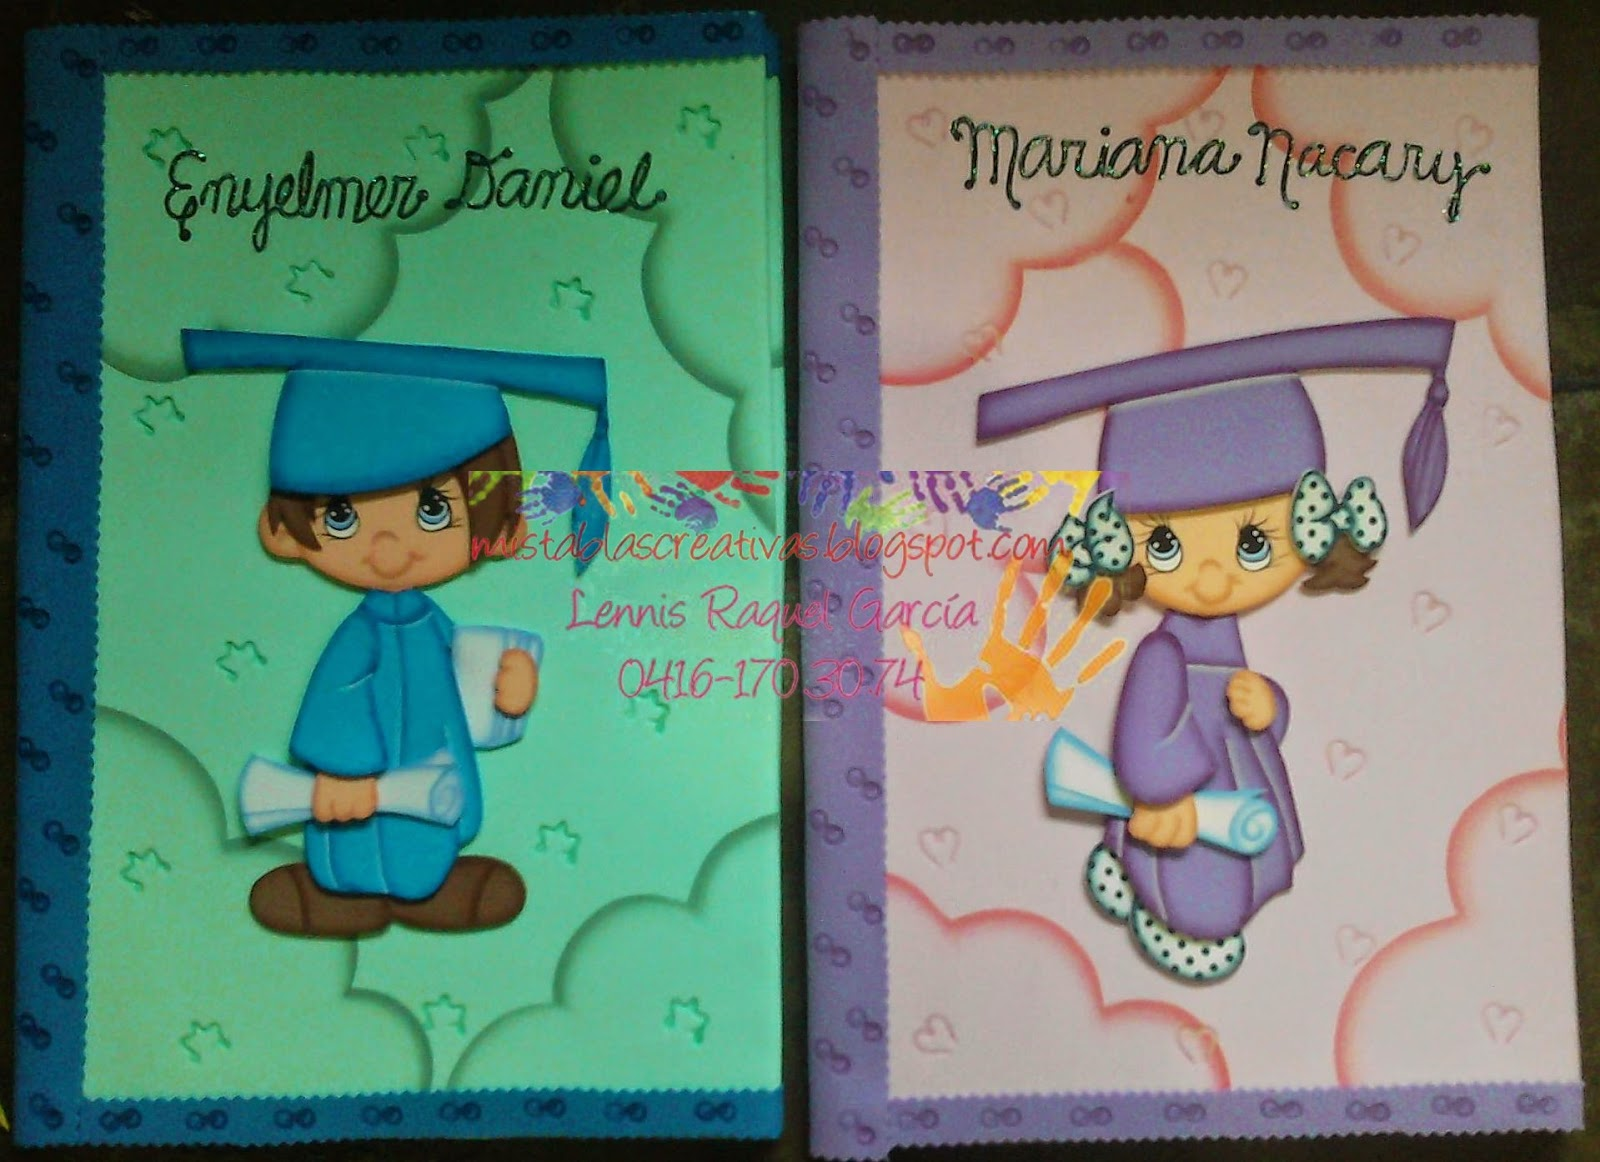 Como Decorar Una Carpeta Para Niños Carpetas Decoradas En Foamy Y Material Reciclable Para Guardar Los